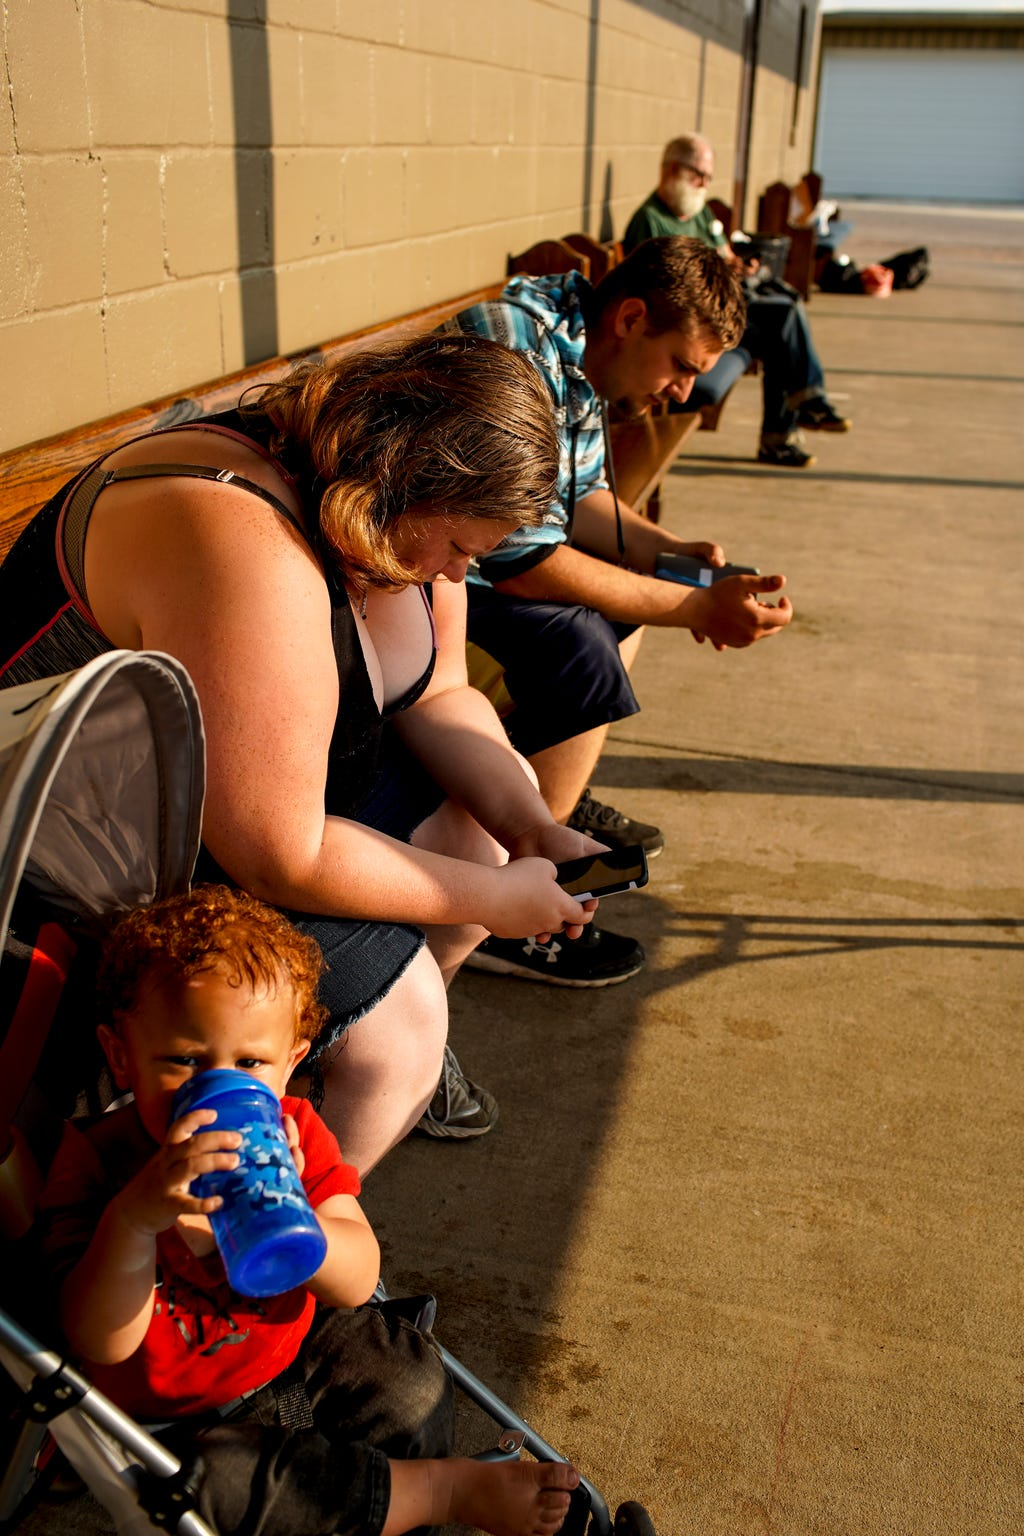 Amber Yoho leans over and takes part in a prayer with her son Aidyn Yoho, 1, in a stroller beside her at Manna Cafe Ministries in Clarksville, Tenn., on Wednesday, April 8, 2020.